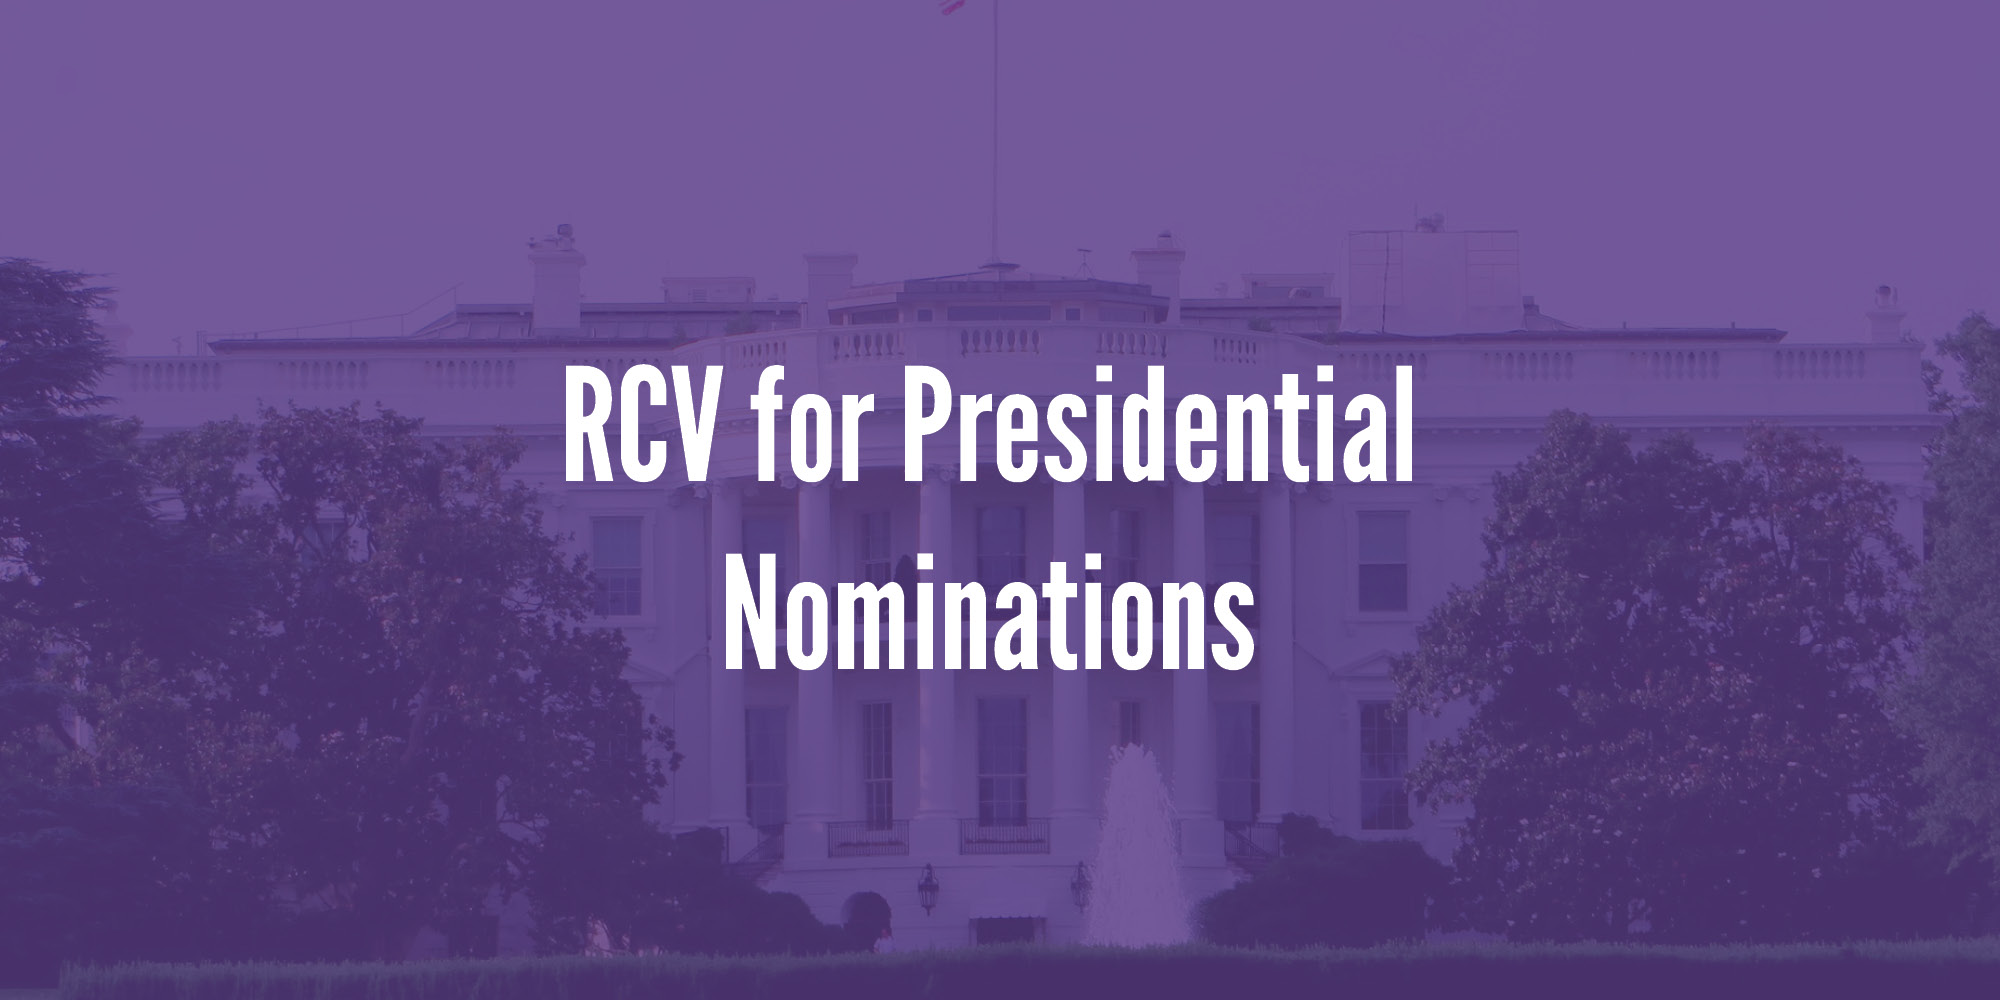 RCV for Presidential Nominations